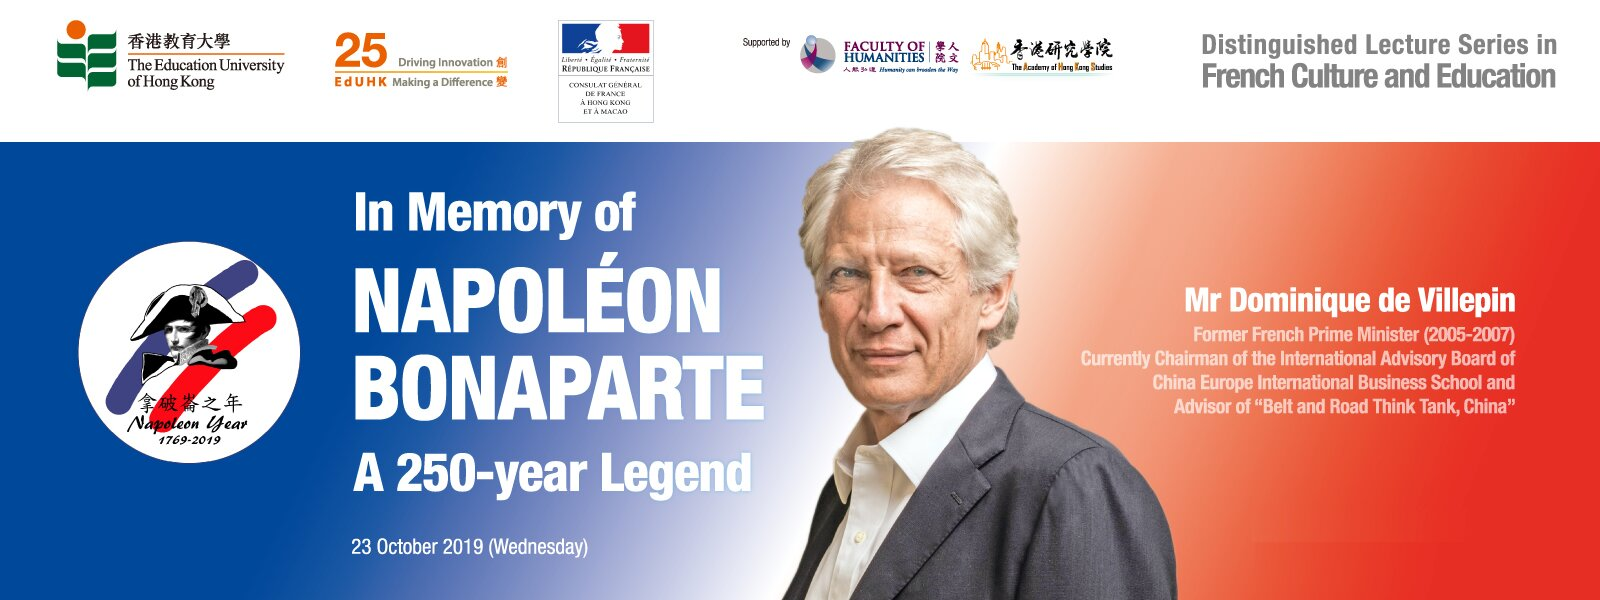 Distinguished Lecture Series in French Culture & Education